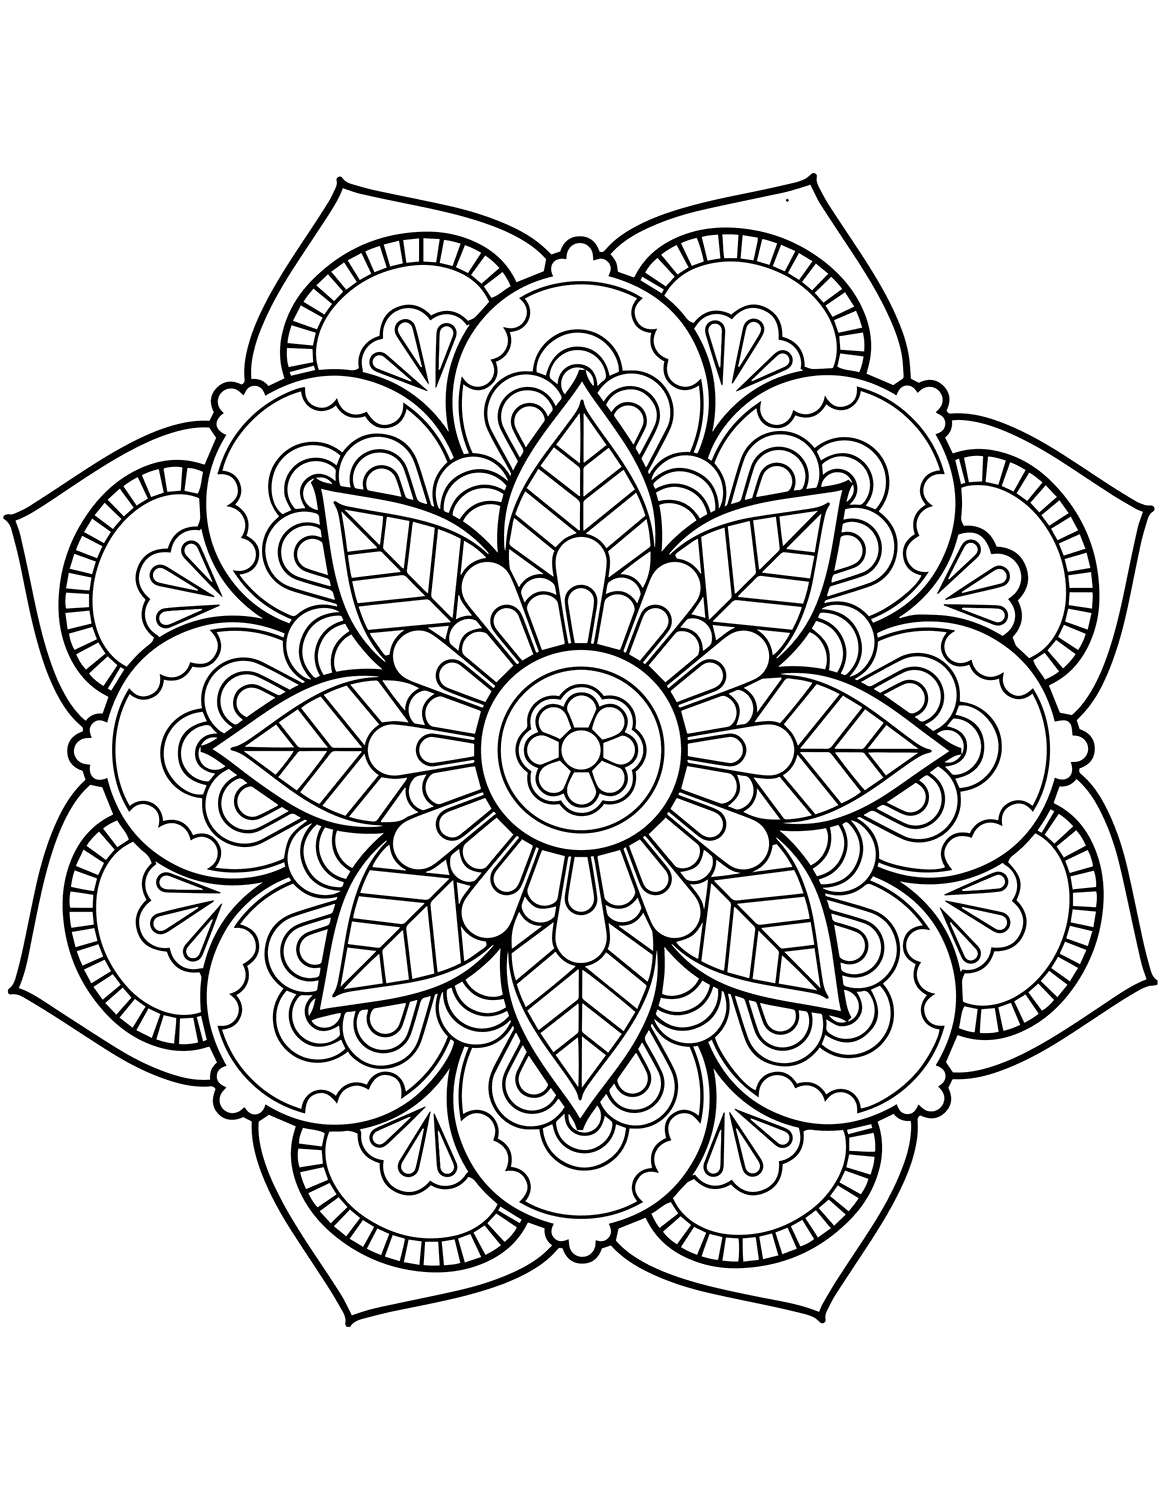 flower mandala coloring pages best coloring pages for kids. Black Bedroom Furniture Sets. Home Design Ideas